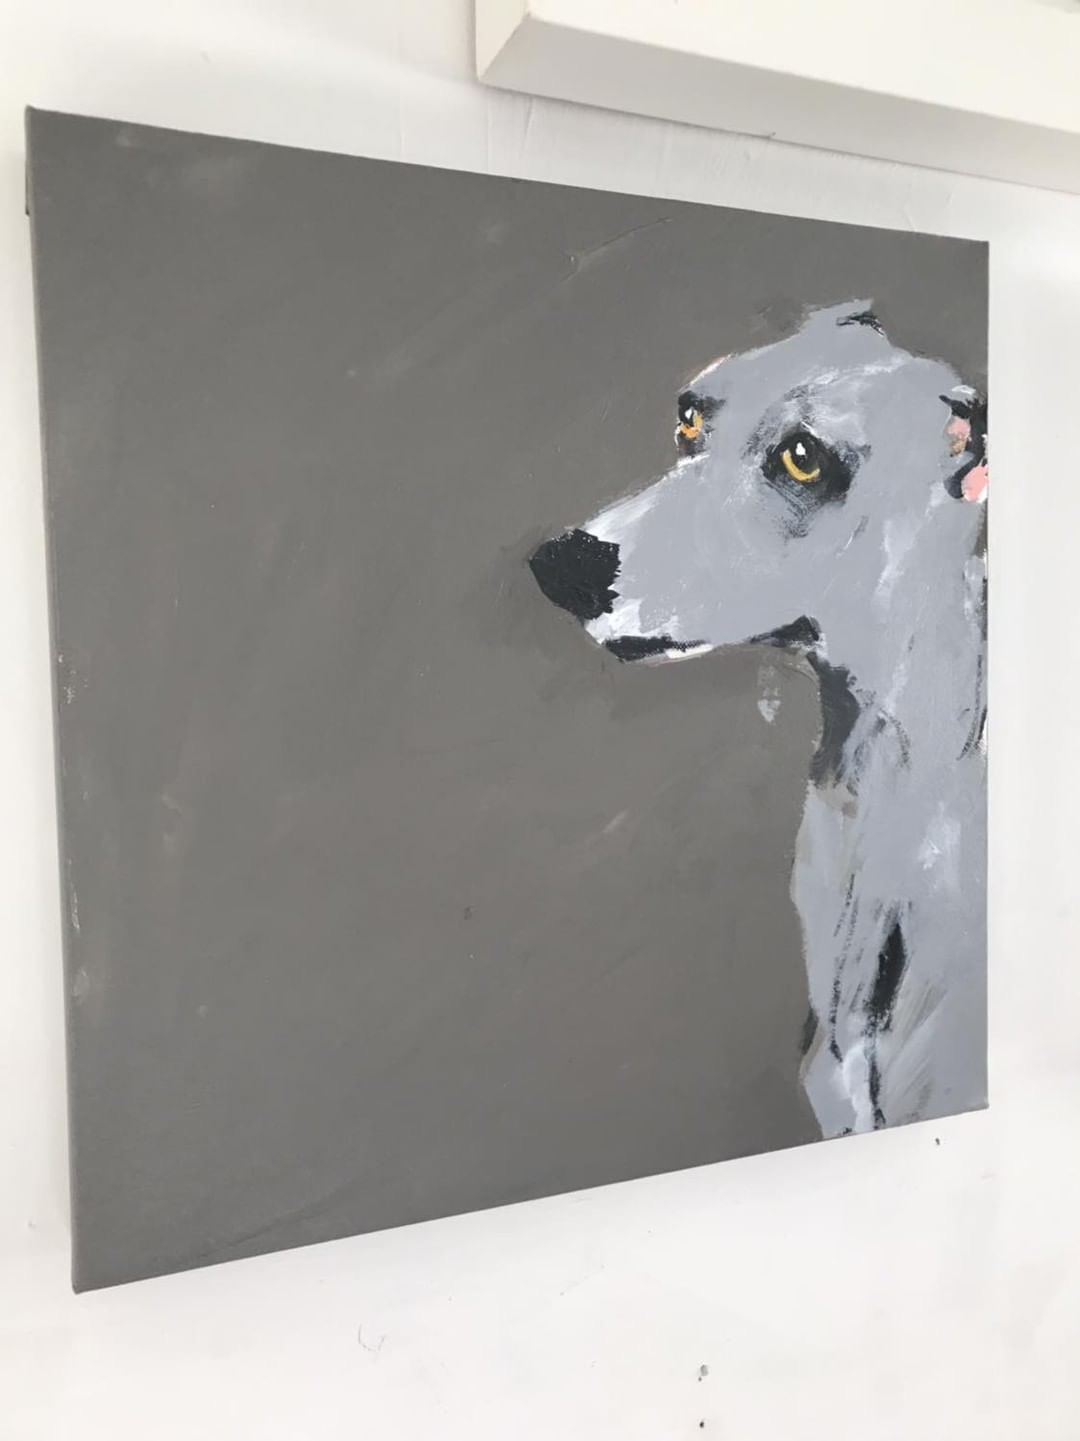 Samantha Barnes is ipaintdogs.com